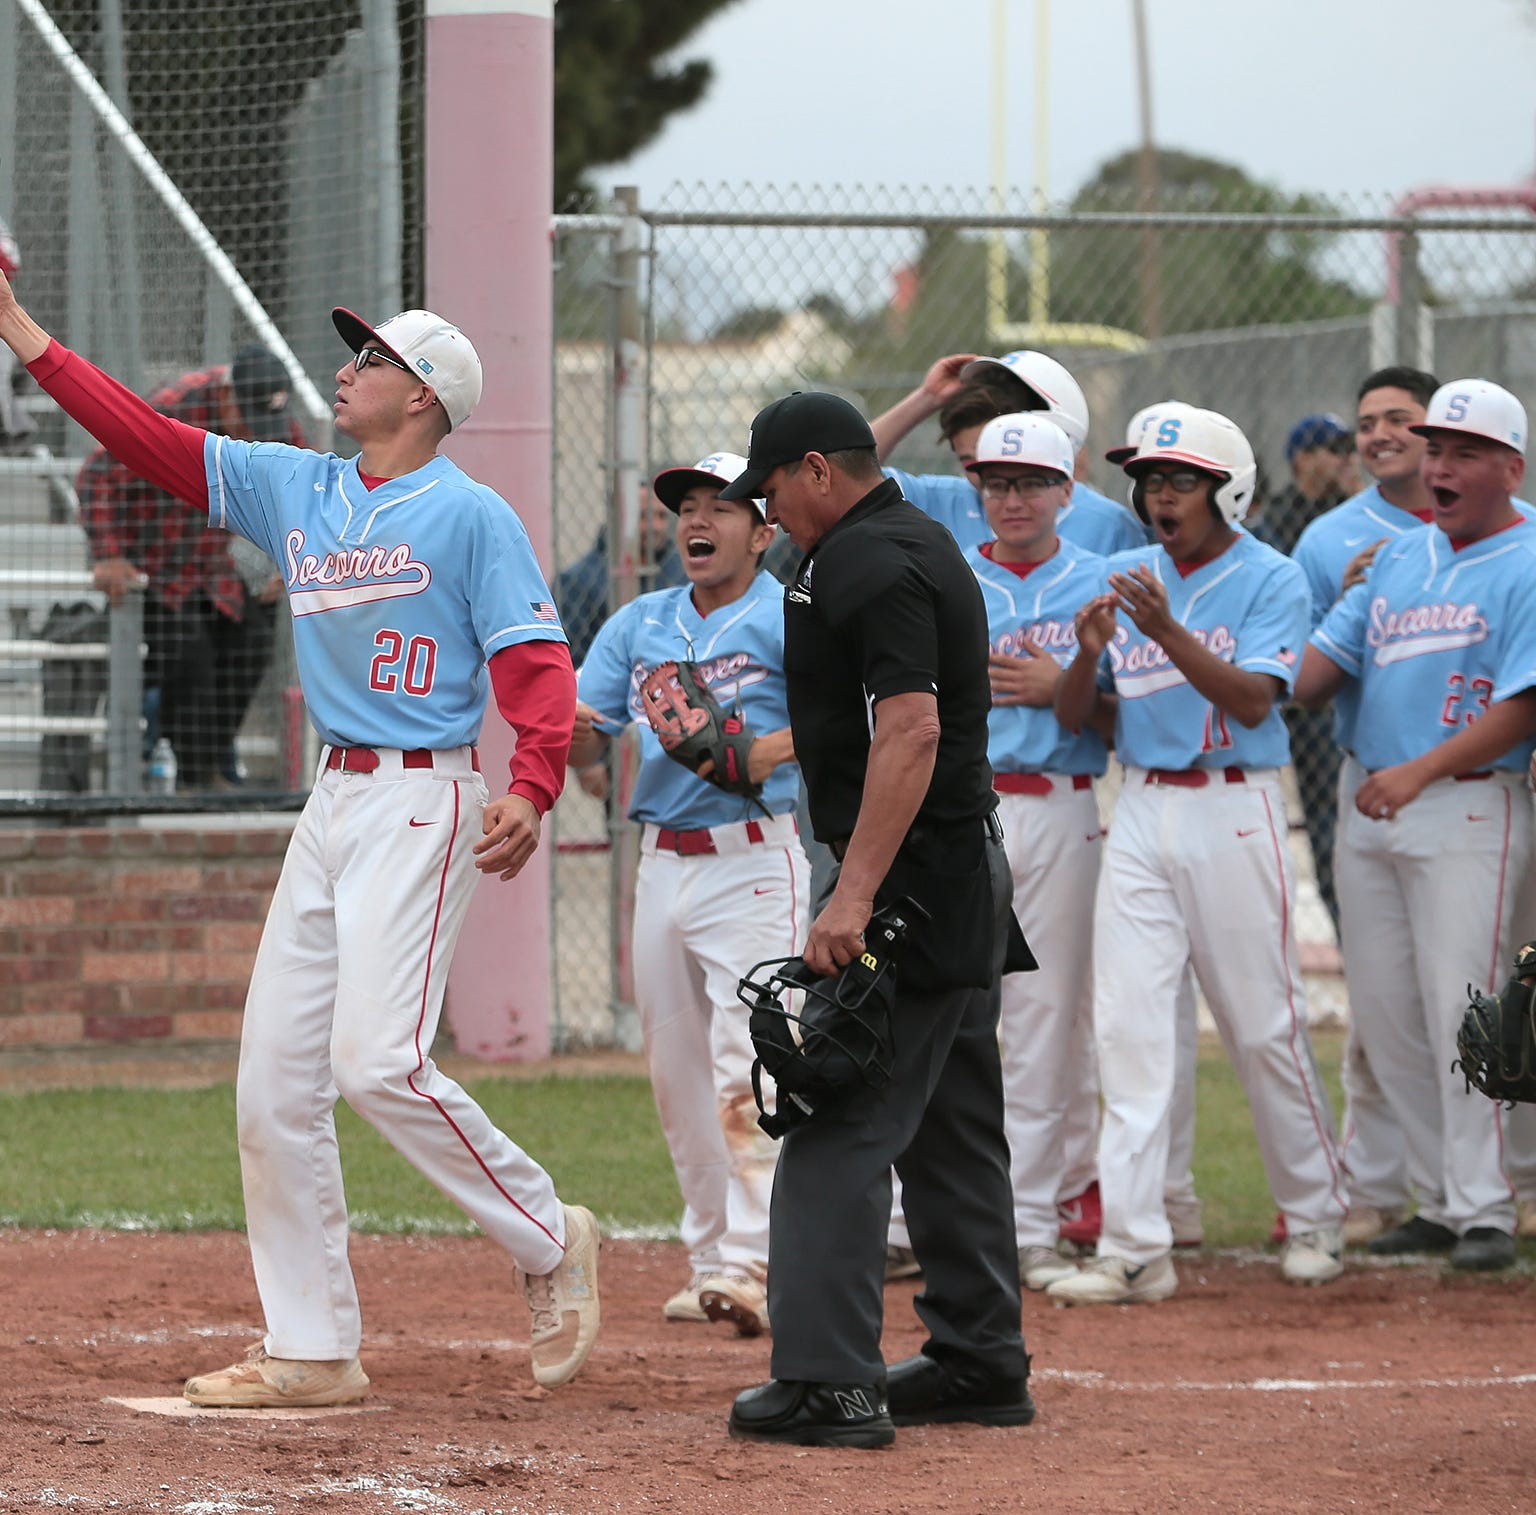 Socorro's Jonathon Rios celebrates his three-run homer to put the Bulldogs ahead 5-3 in the bottom of the third inning Friday against Franklin.